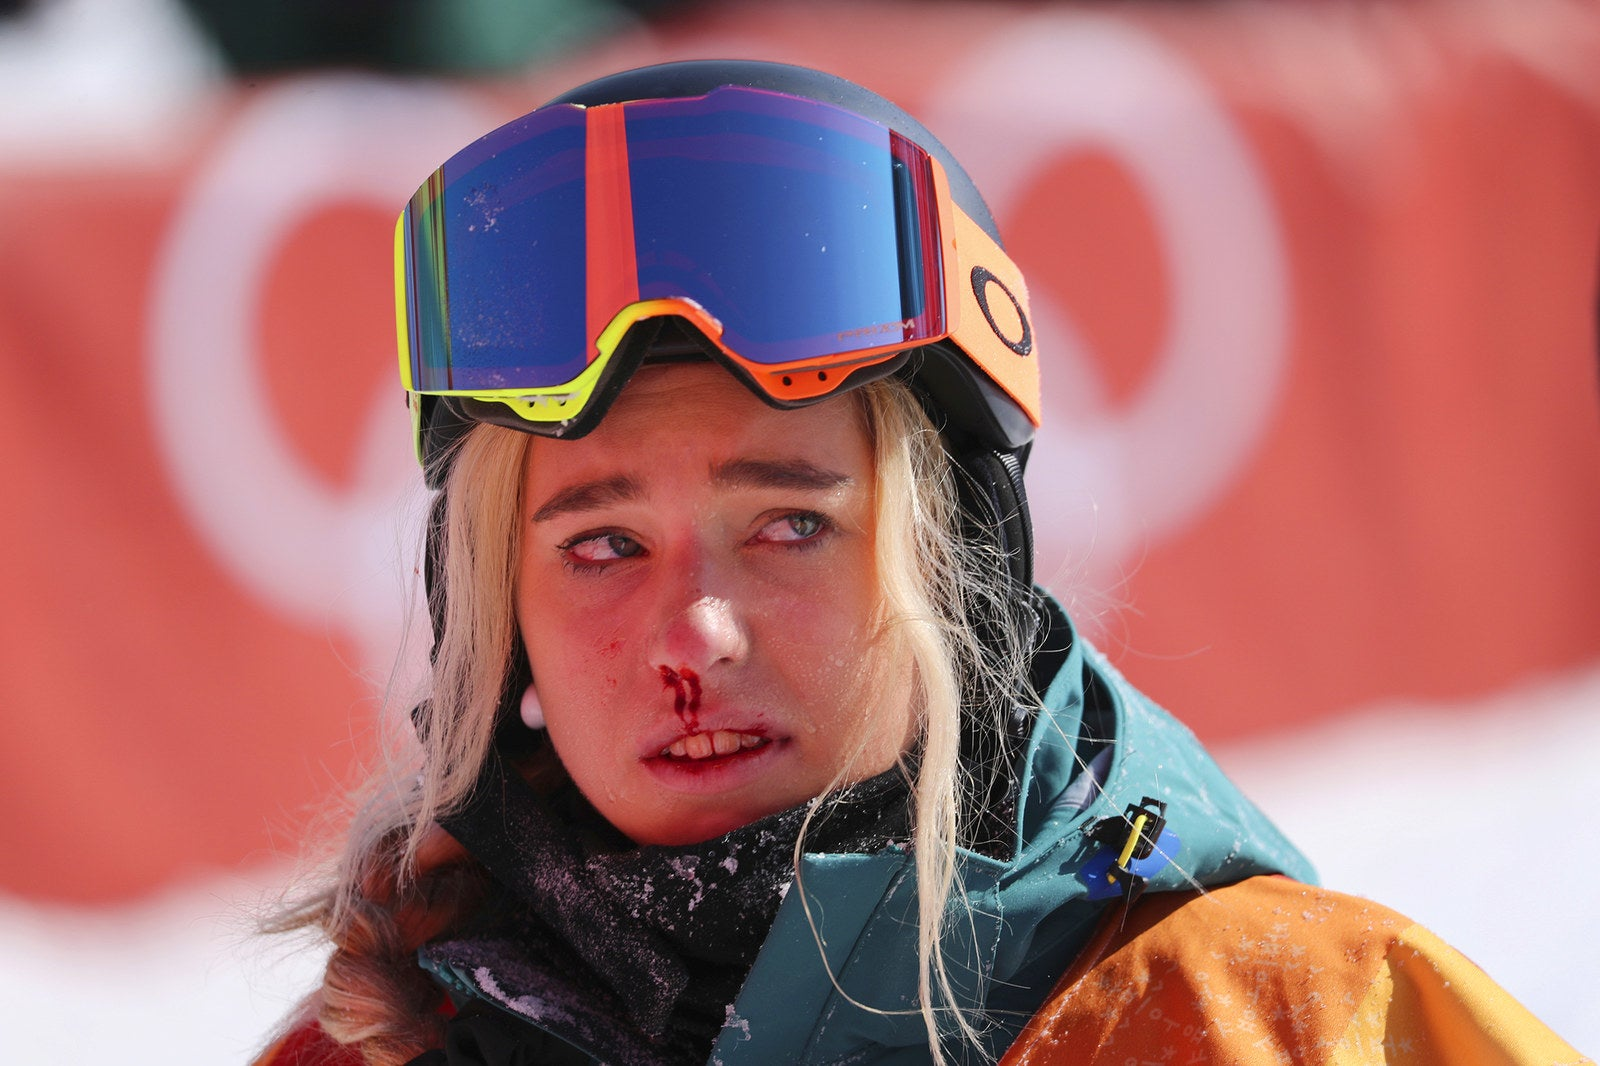 Emily Arthur of Australia is left bleeding after falling in her final run during the women's halfpipe final at the Pyeongchang 2018 Winter Olympics on Feb. 13.